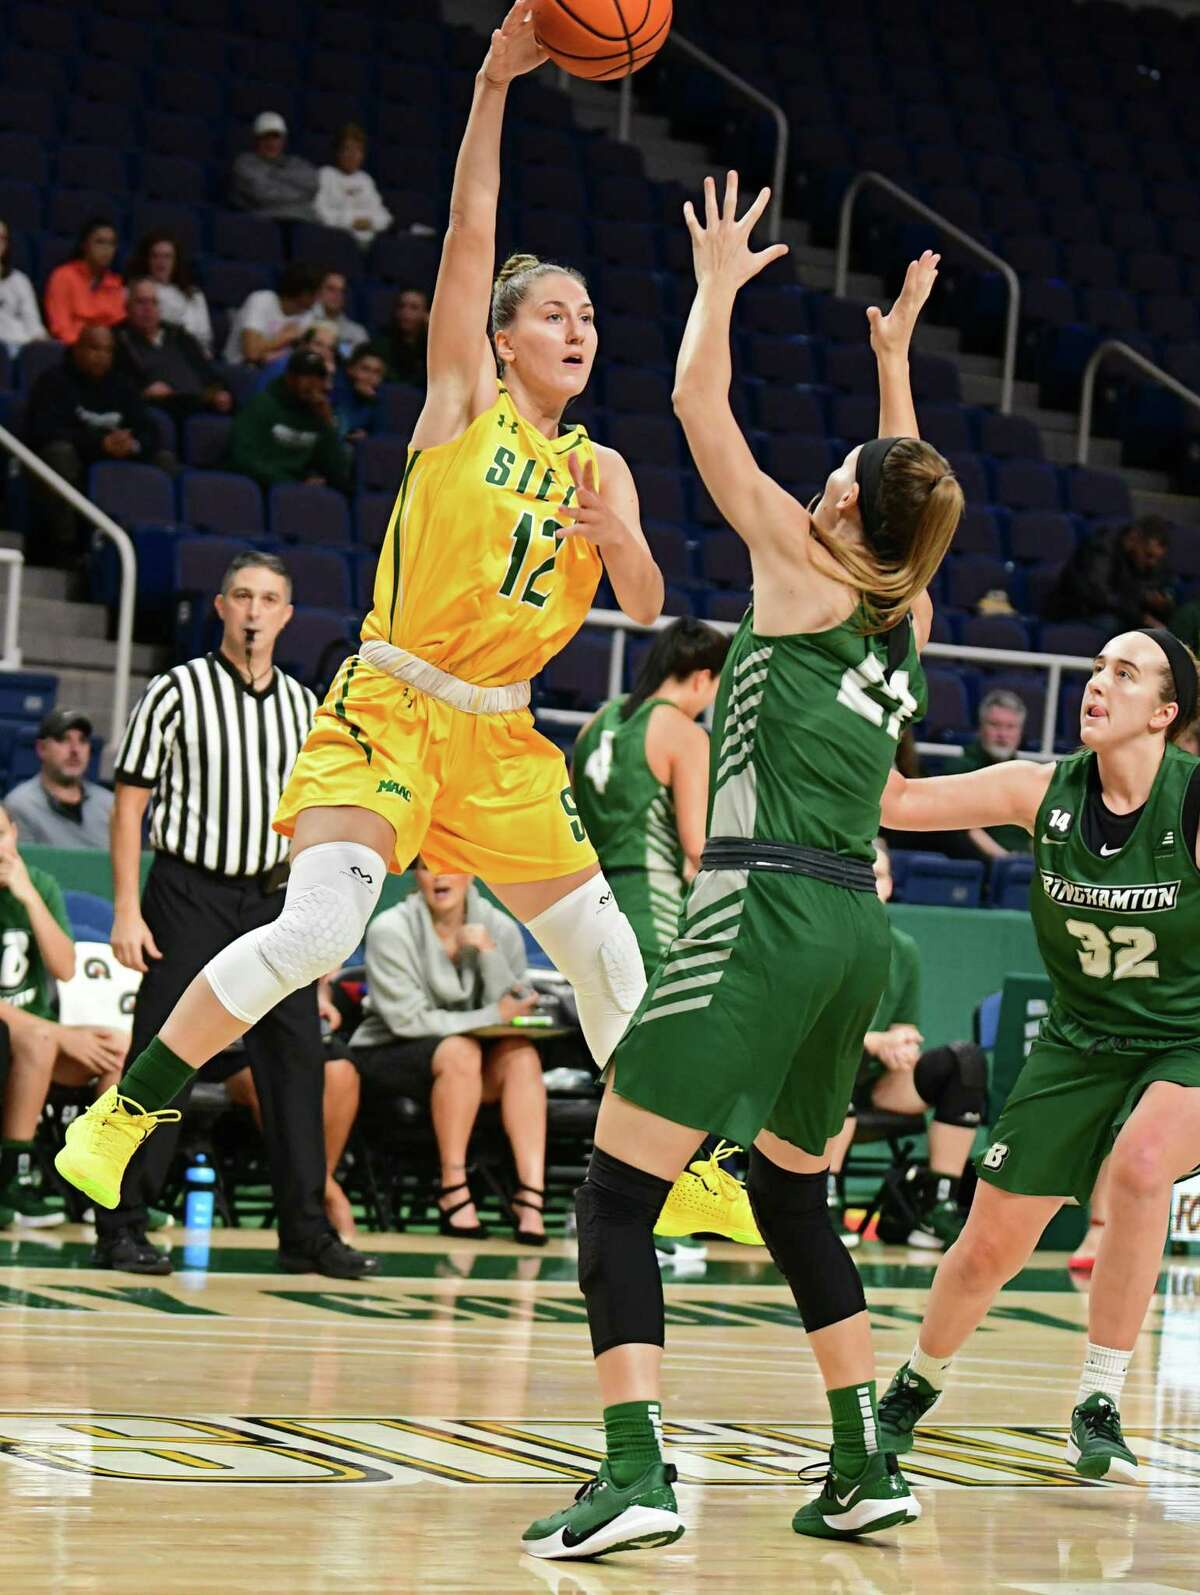 Siena's Marilena Gerostergiou passes the ball during a basketball game against Binghamton at the Times Union Center on Tuesday, Nov. 5, 2019 in Albany, N.Y. (Lori Van Buren/Times Union)